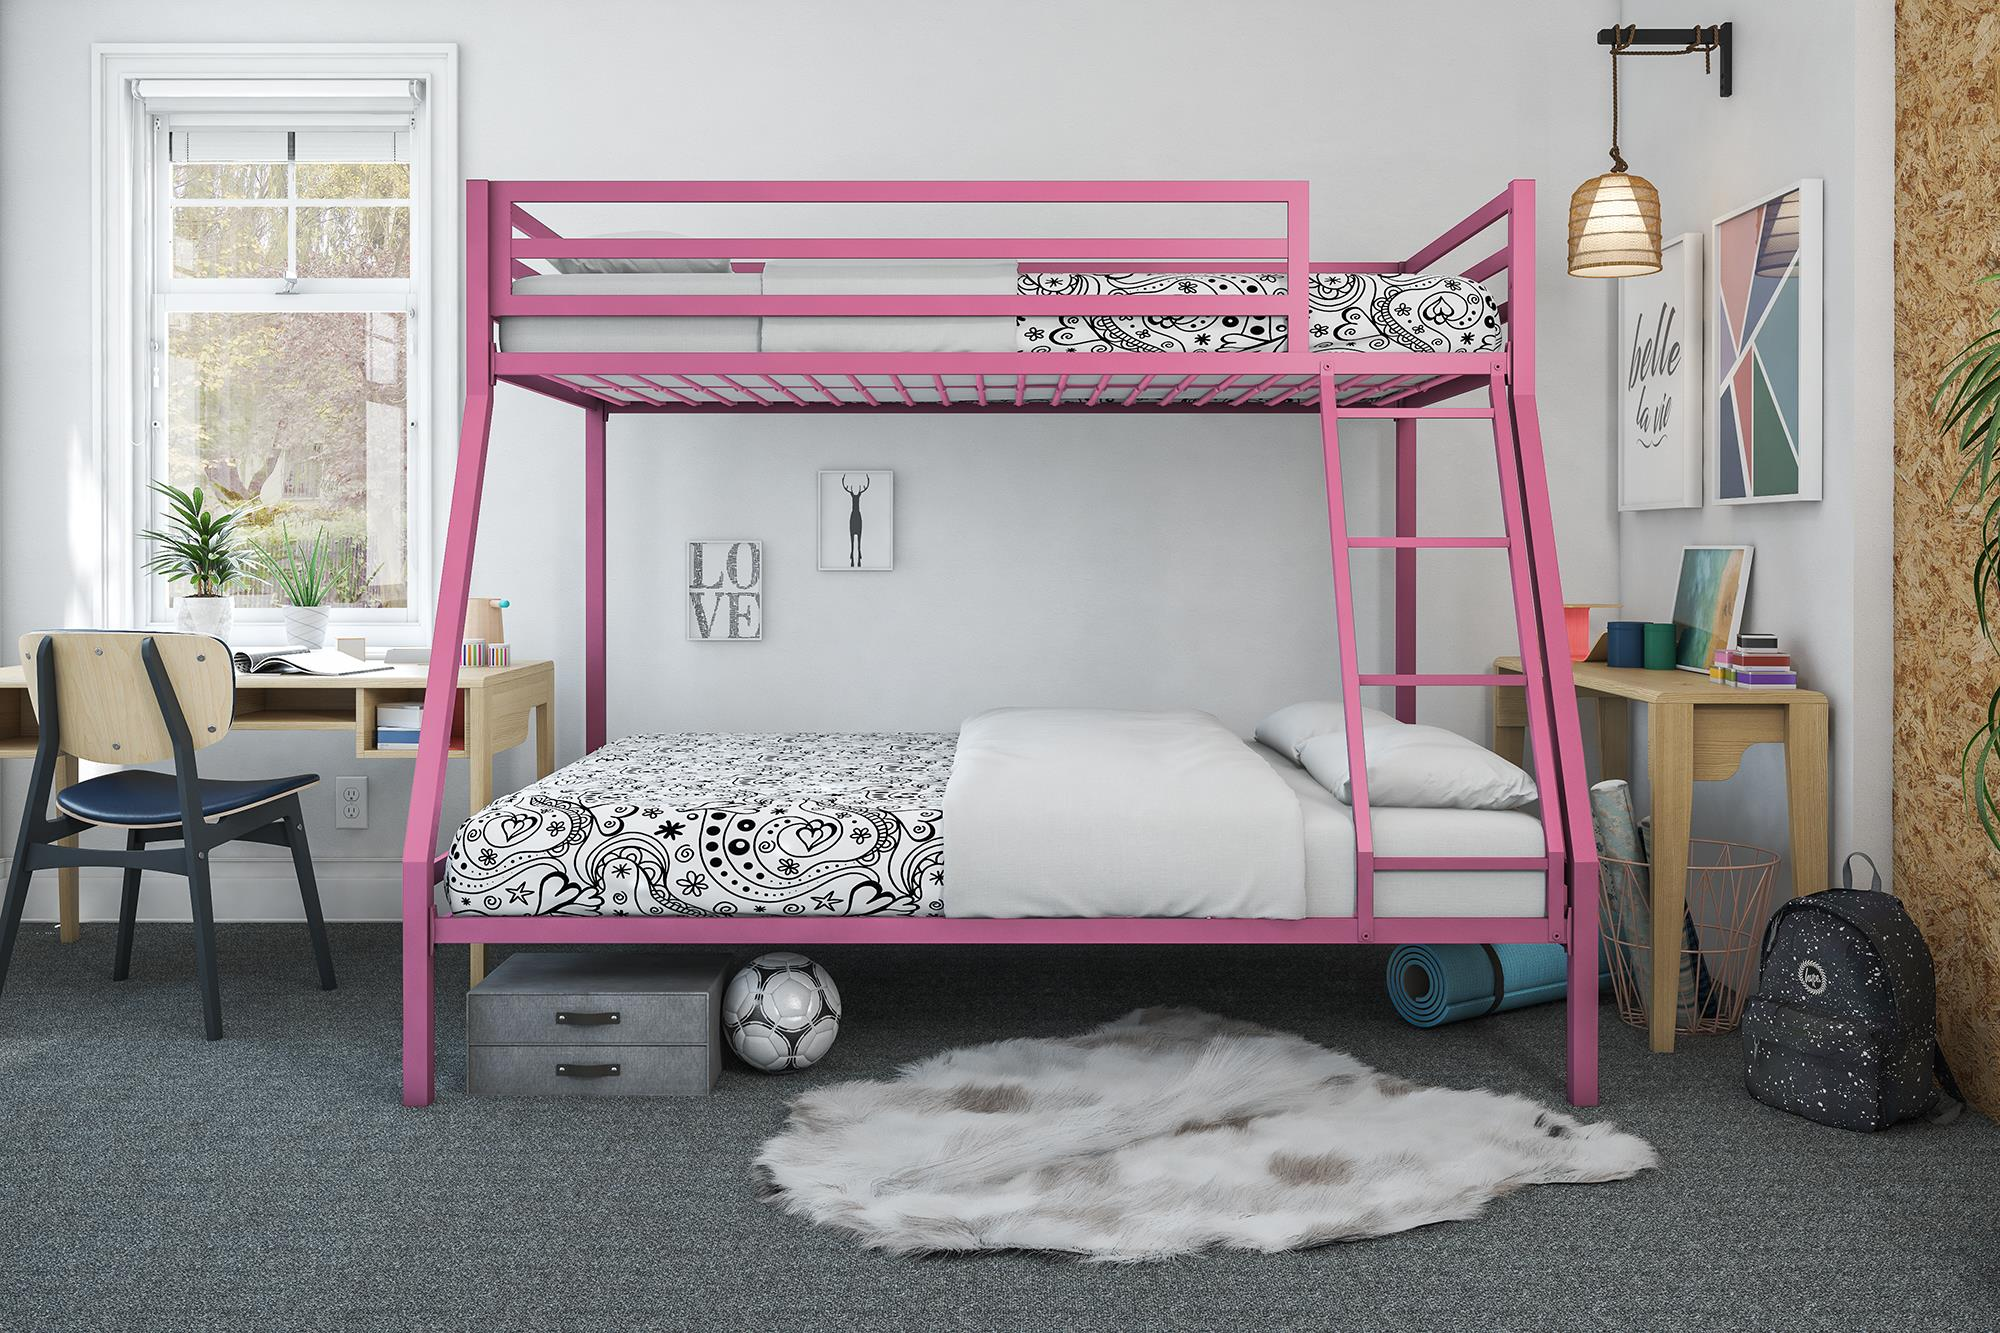 Details About Twin Over Full Bunk Bed Double Deck Junior Kids Loft Premium Metal Frame Pink